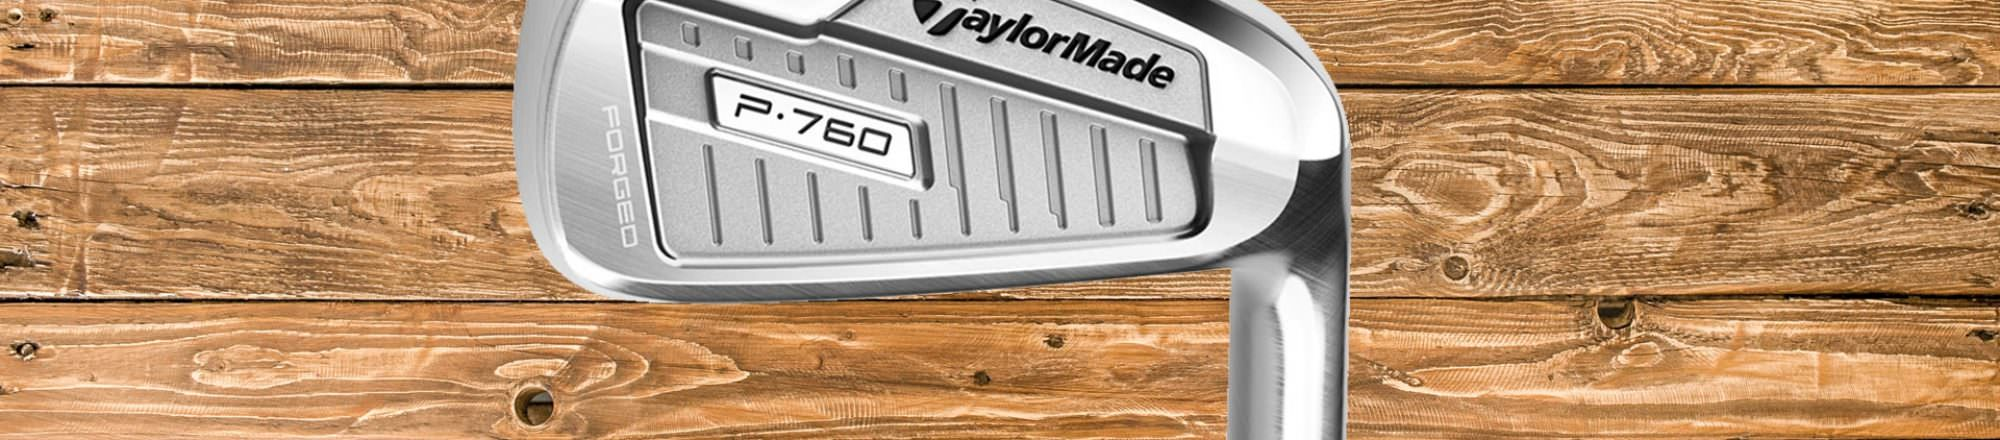 TaylorMade's P760 irons are here – but how do they perform?